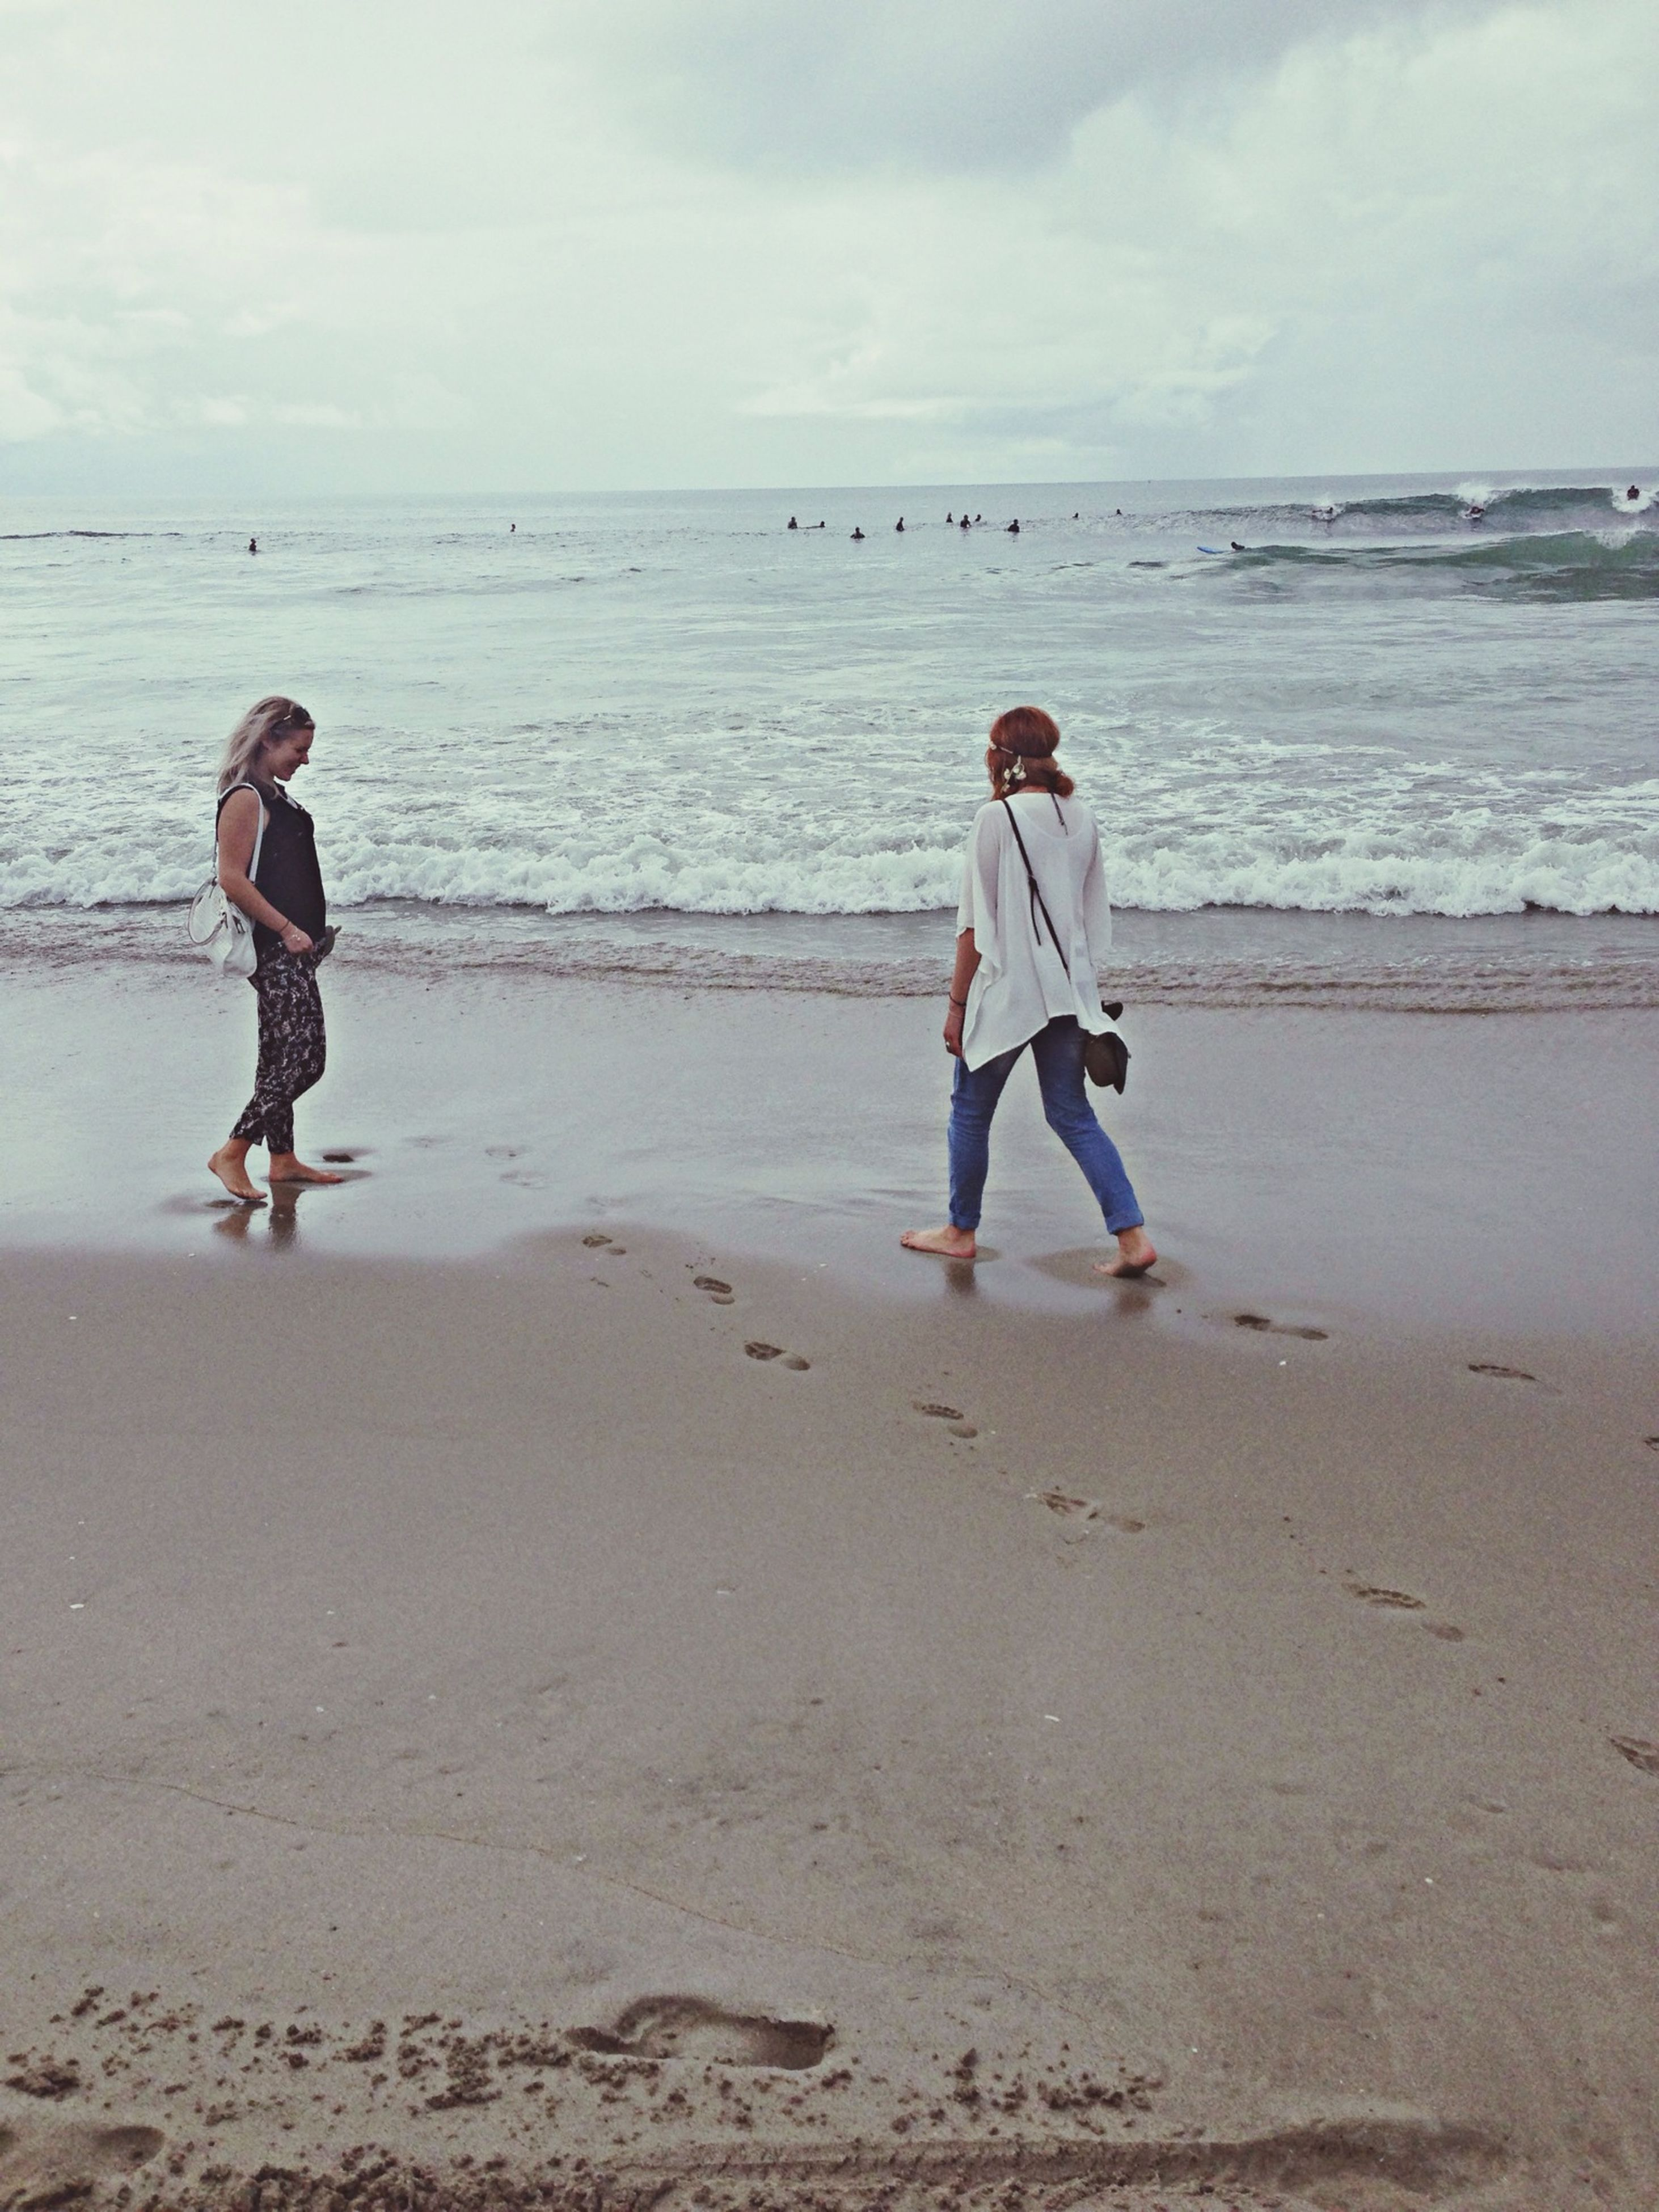 beach, sea, shore, water, sand, horizon over water, full length, lifestyles, leisure activity, childhood, sky, casual clothing, vacations, boys, elementary age, standing, girls, wave